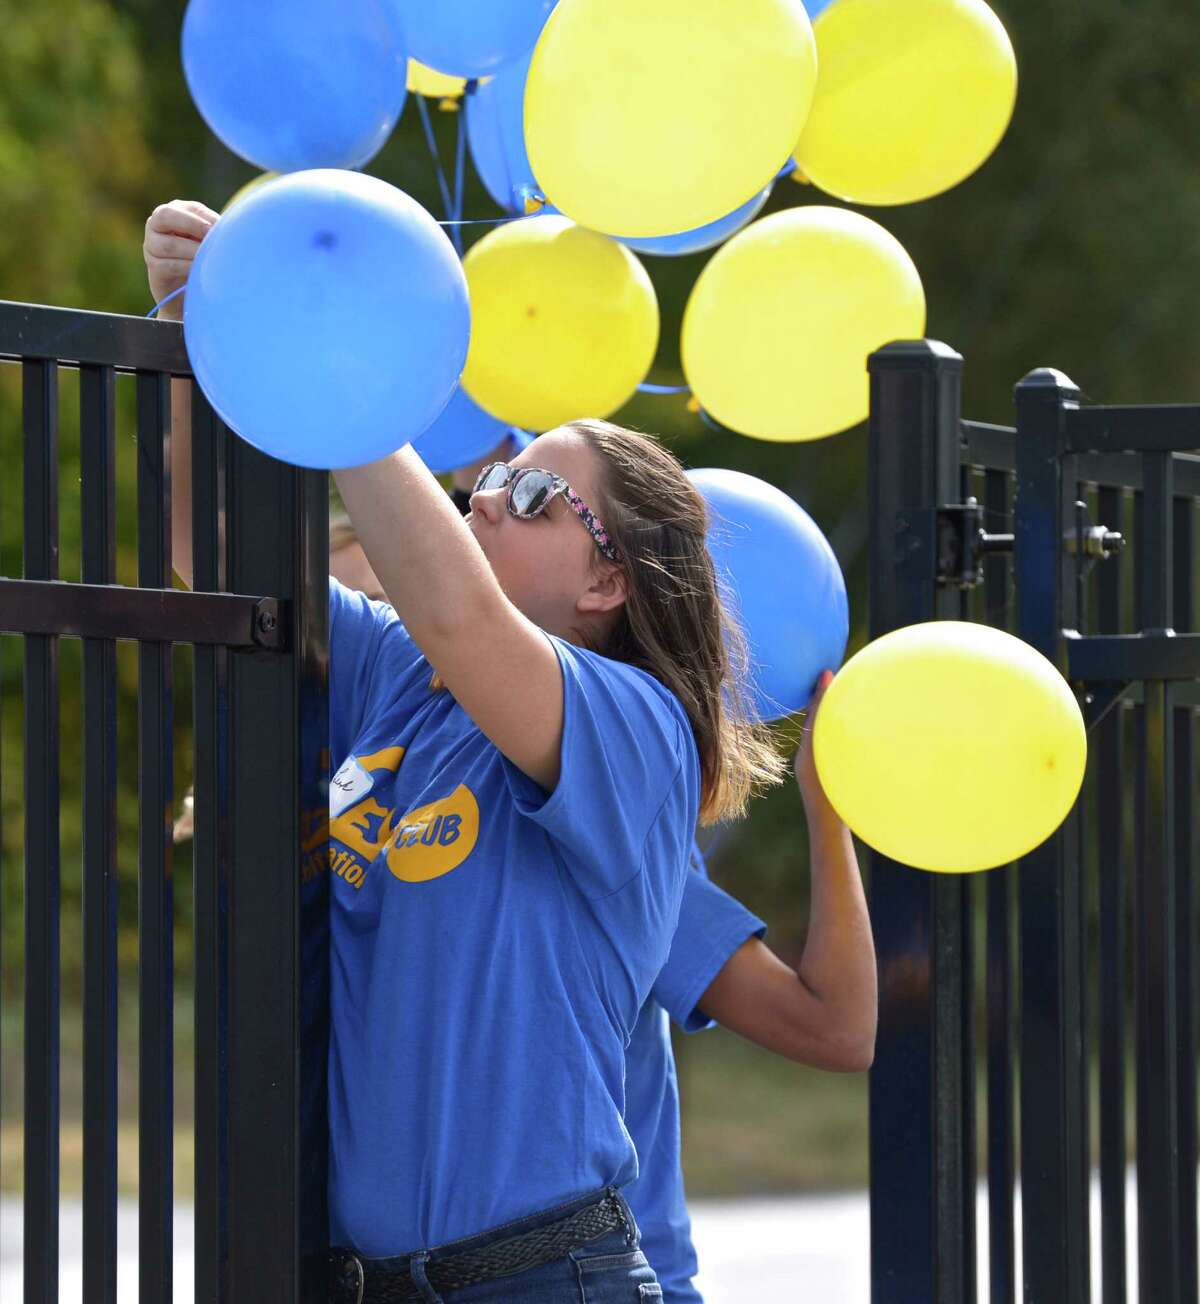 Leah Thompson, 15, ties blue and yellow balloons on the fence by the entrance to the Town Park Beach for Brookfield's celebration to mark the completion of the Town Park Beach on Candlewood Lake, on Saturday, September 26, 2015, in Brookfield, Conn. Thompson is a 10th grader at Brookfield High School and a member of the Key Club International who's members were volunteering at the celebration.